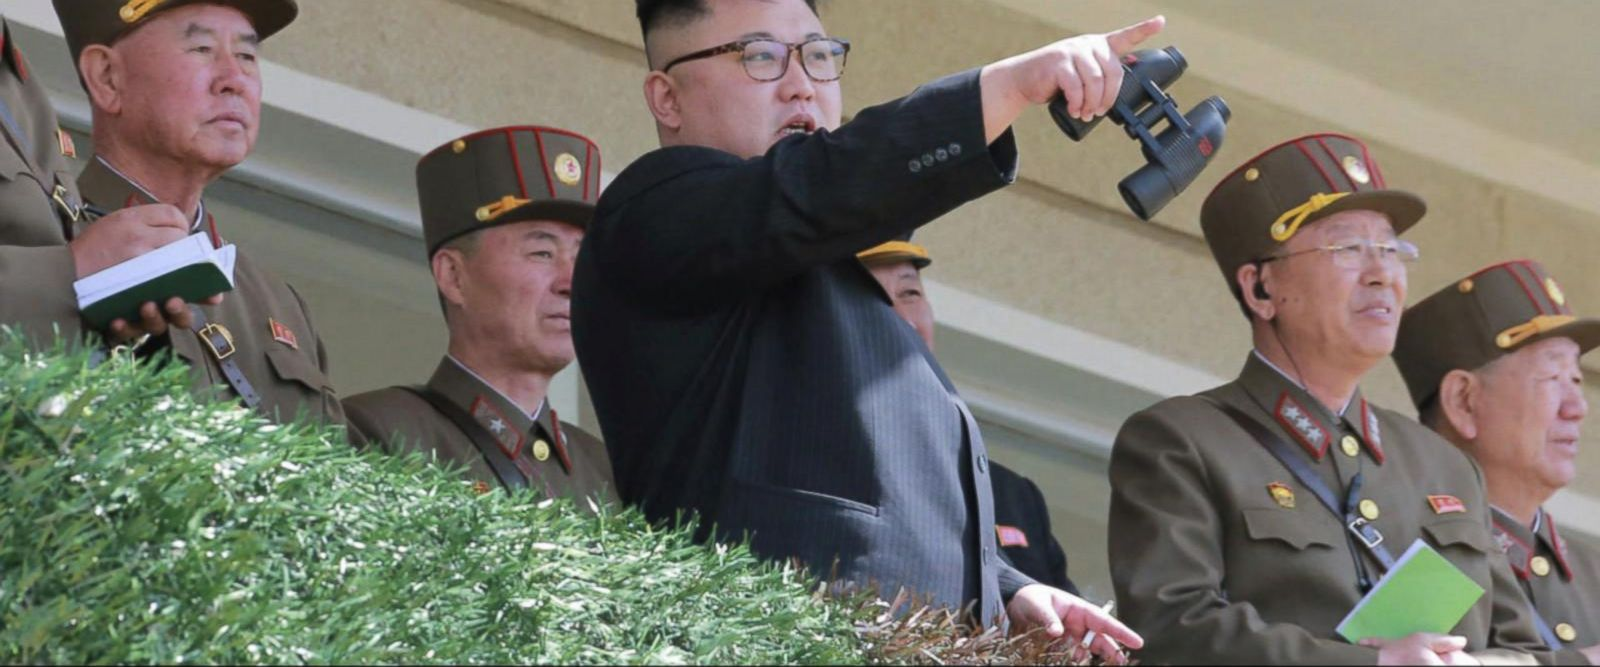 VIDEO: North Korea's latest failed missile launch attempt